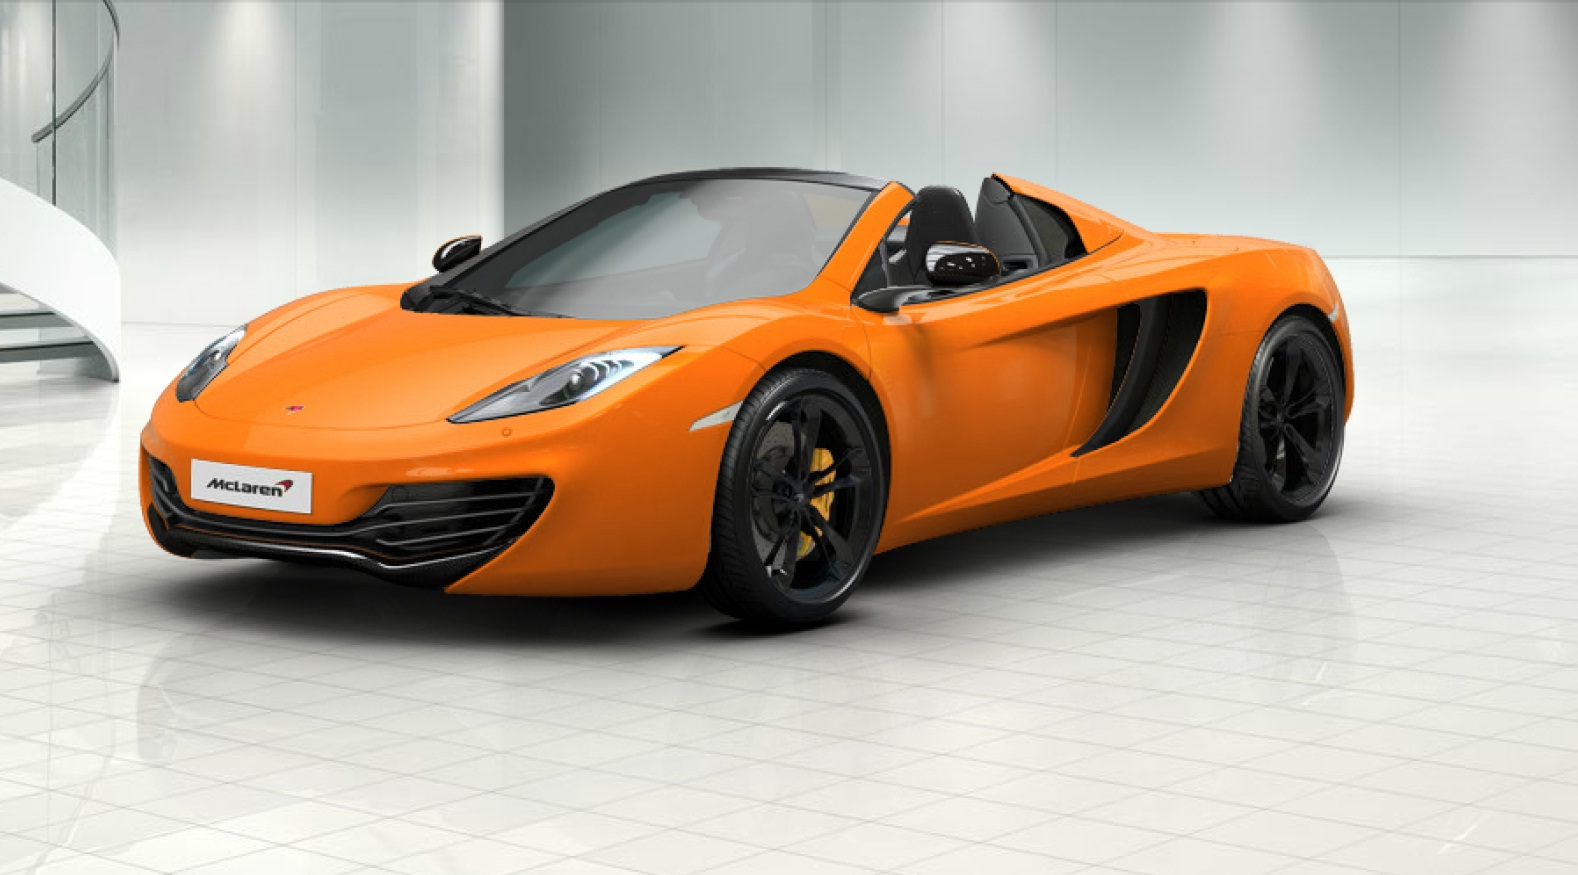 automotive officially unveiled the mclaren mp4 12c spider super Sports Car designed Free Download Image Of